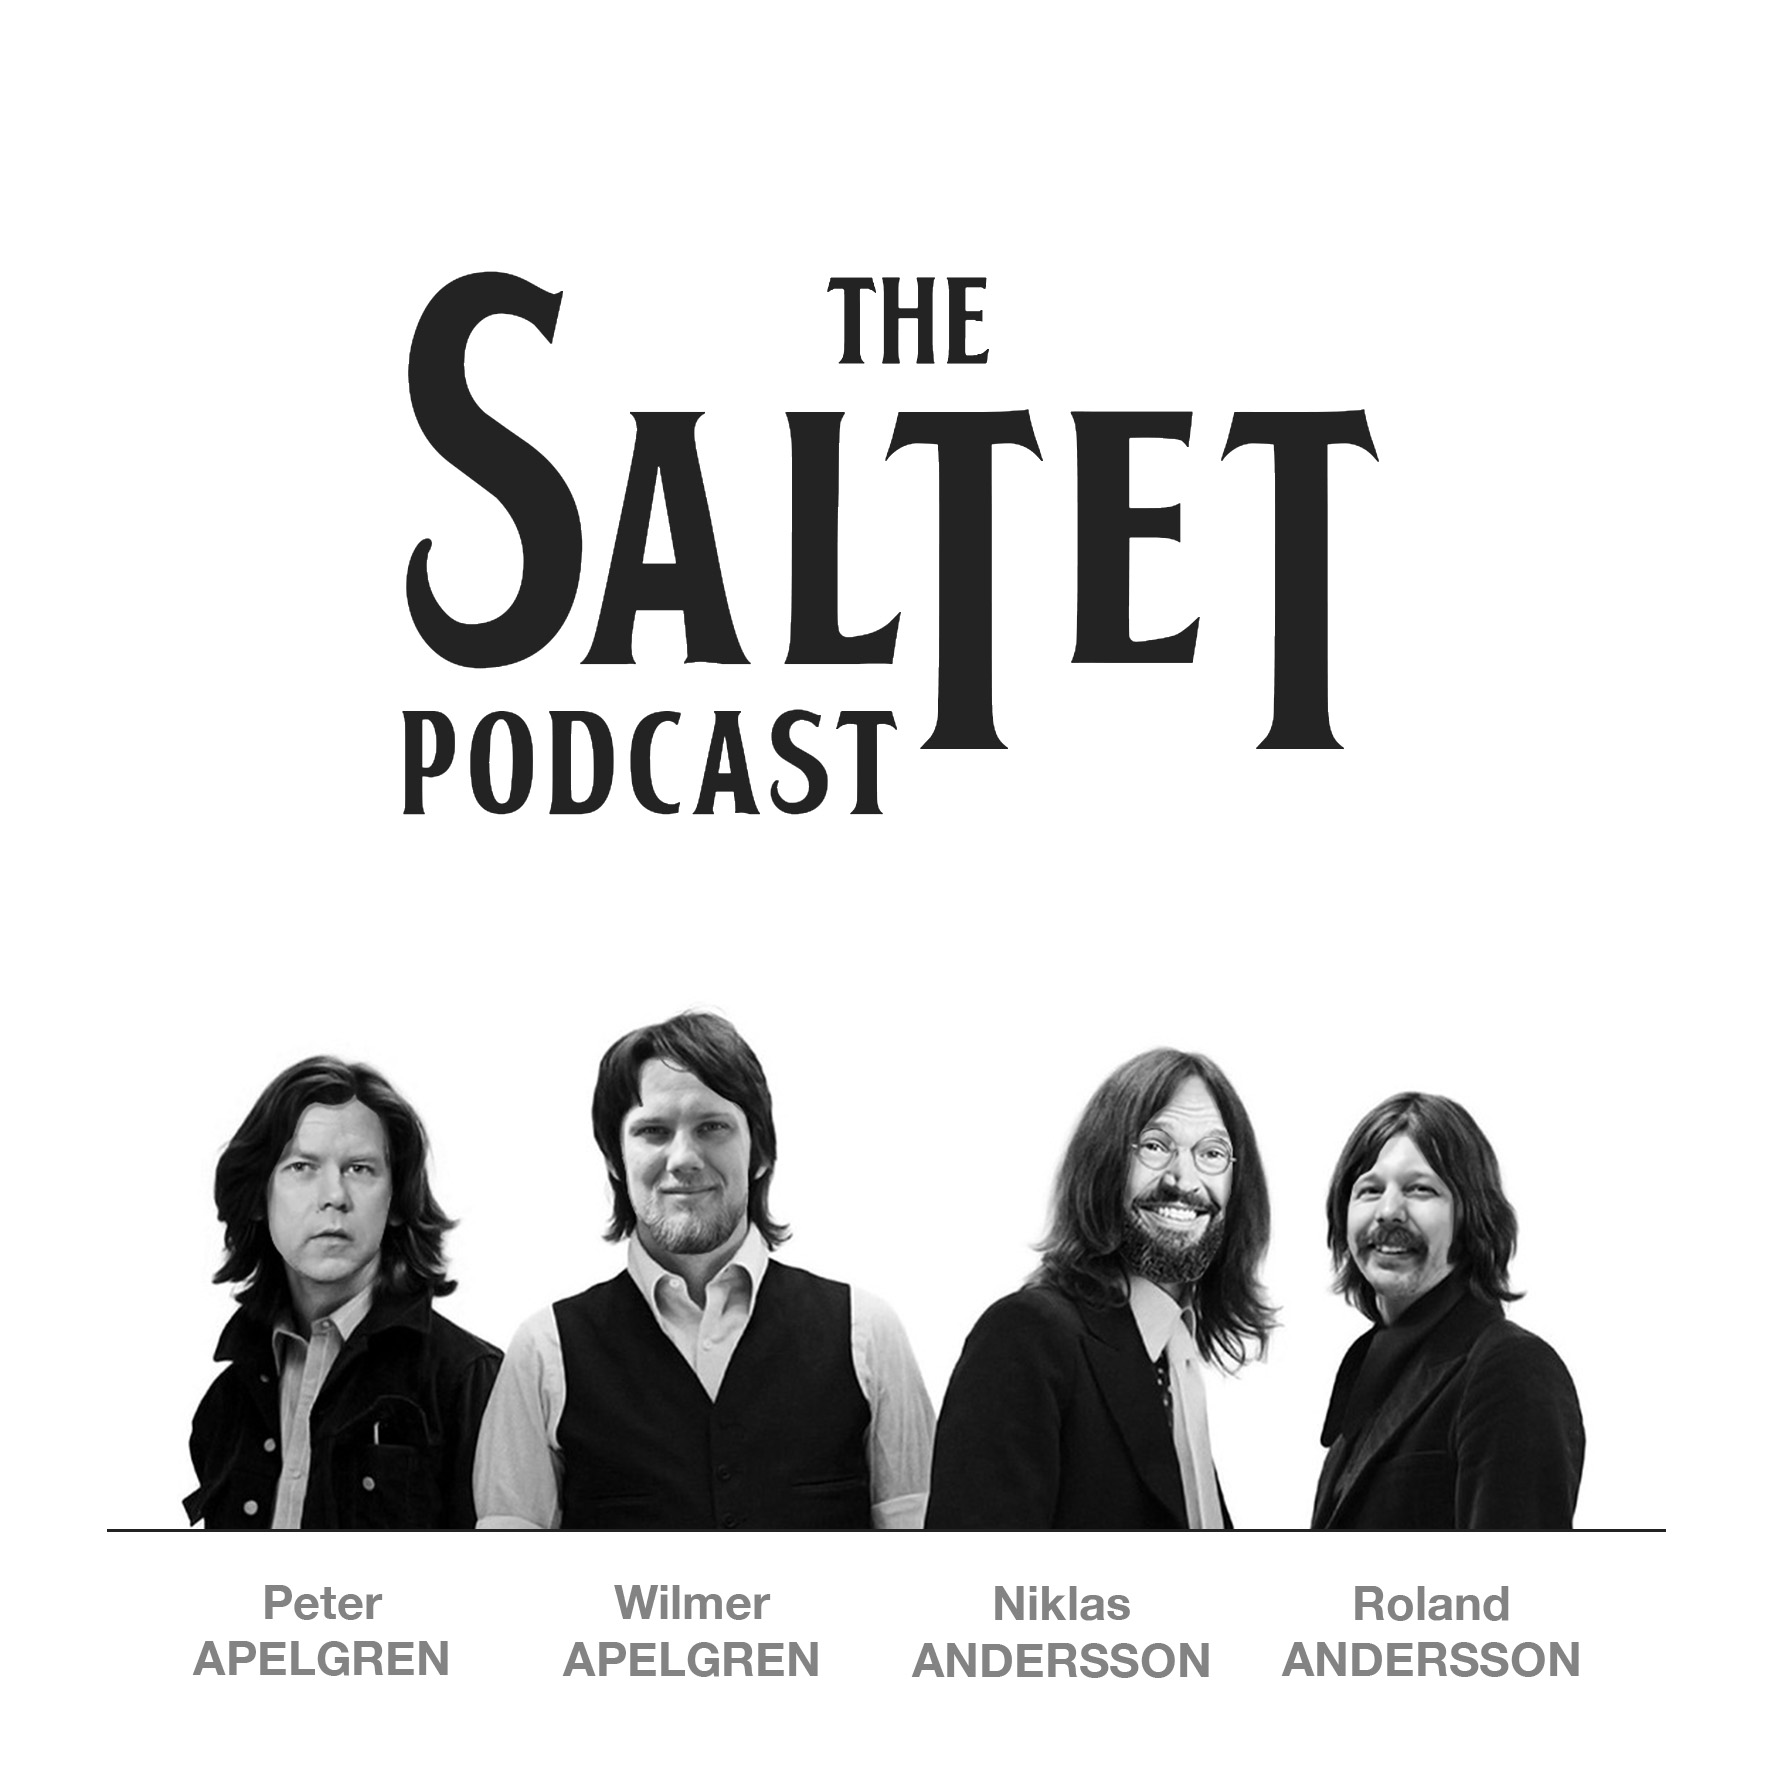 The Saltet podcast